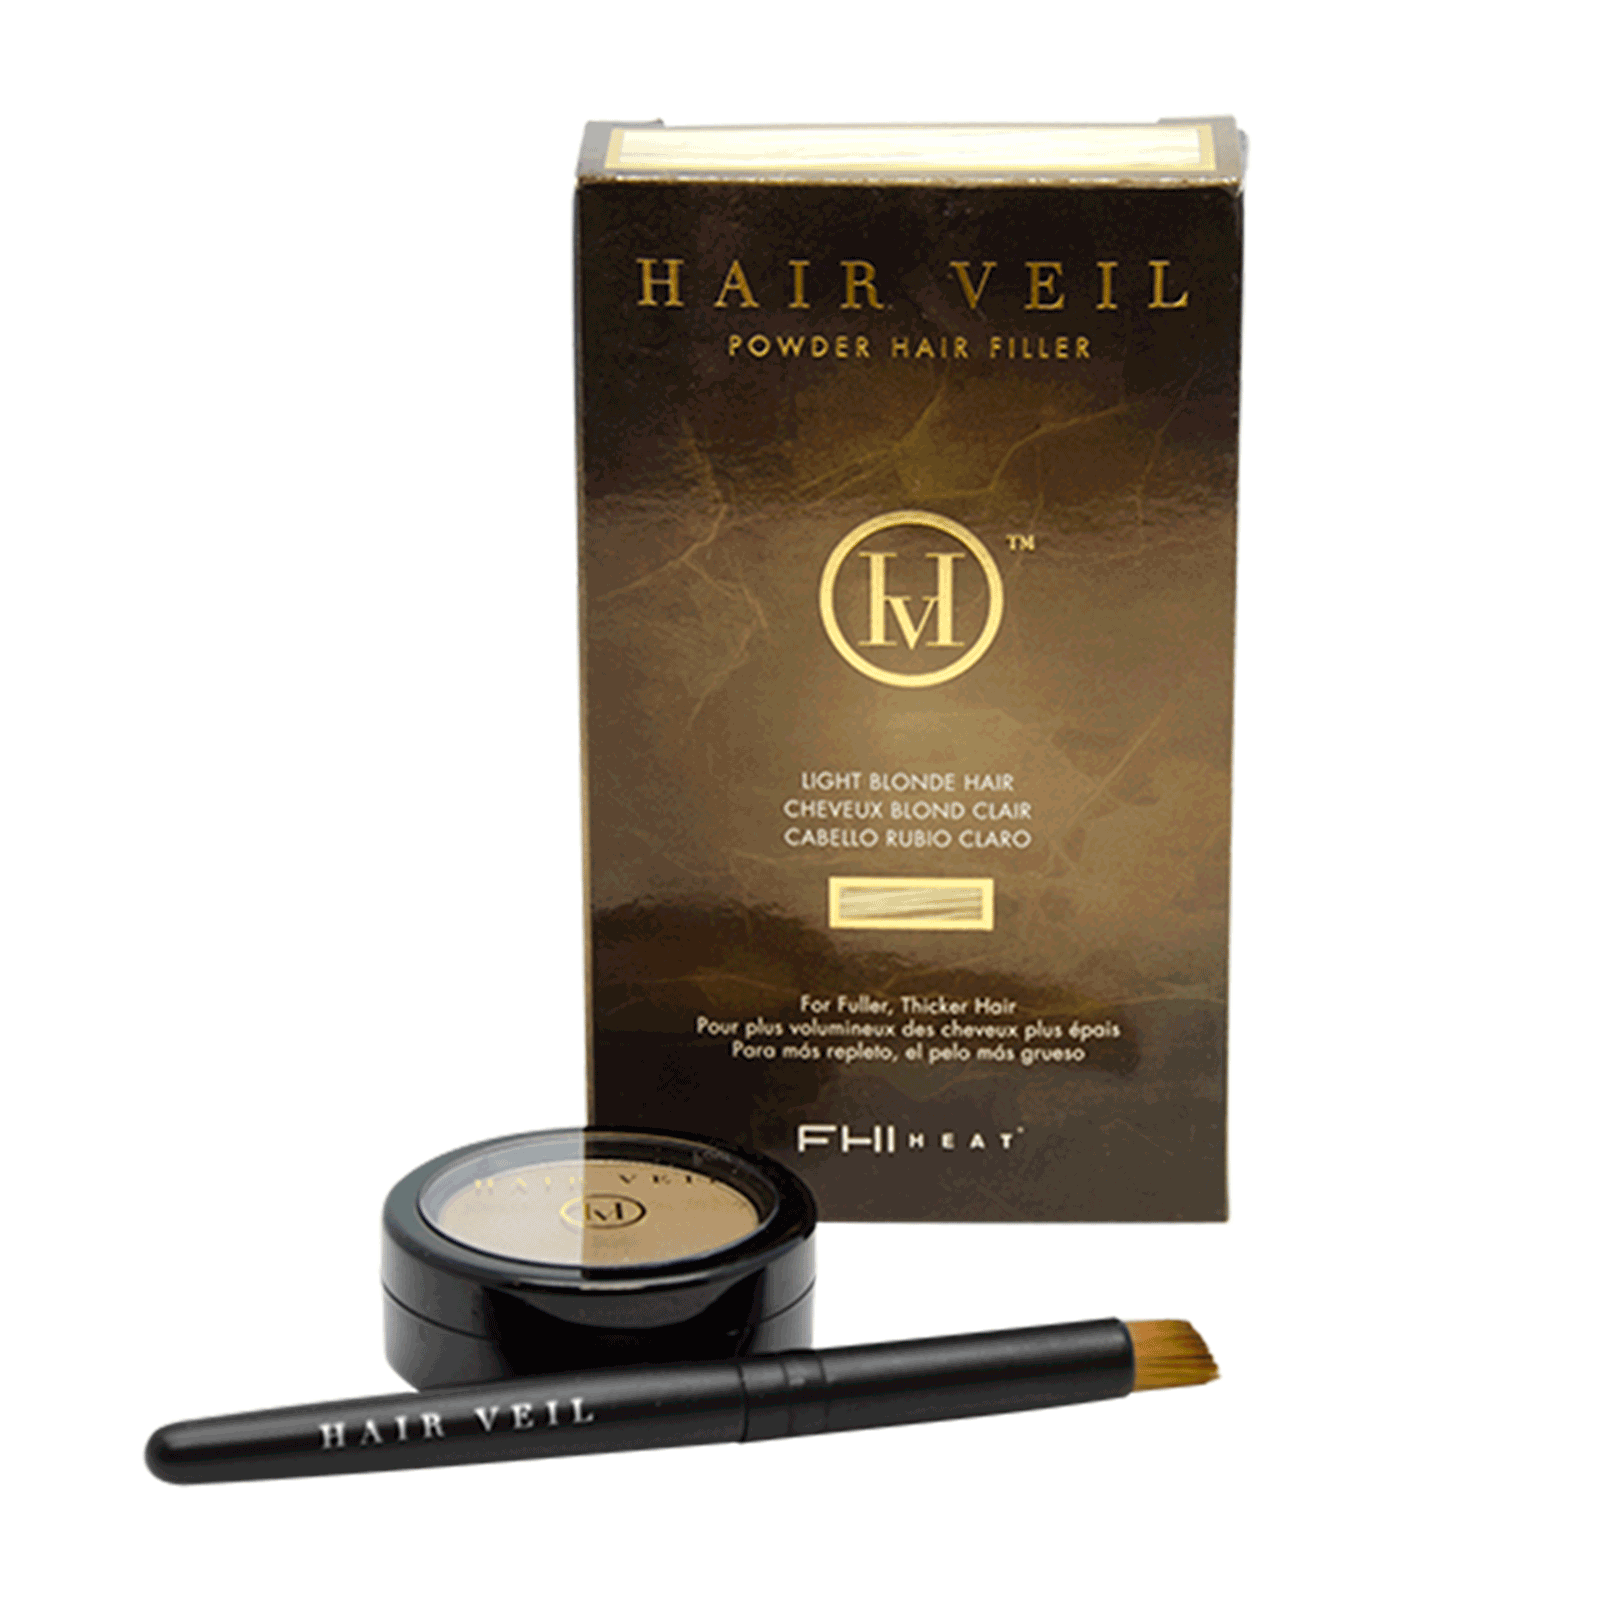 Hair Veil Powder Hair Filler - Light Blonde